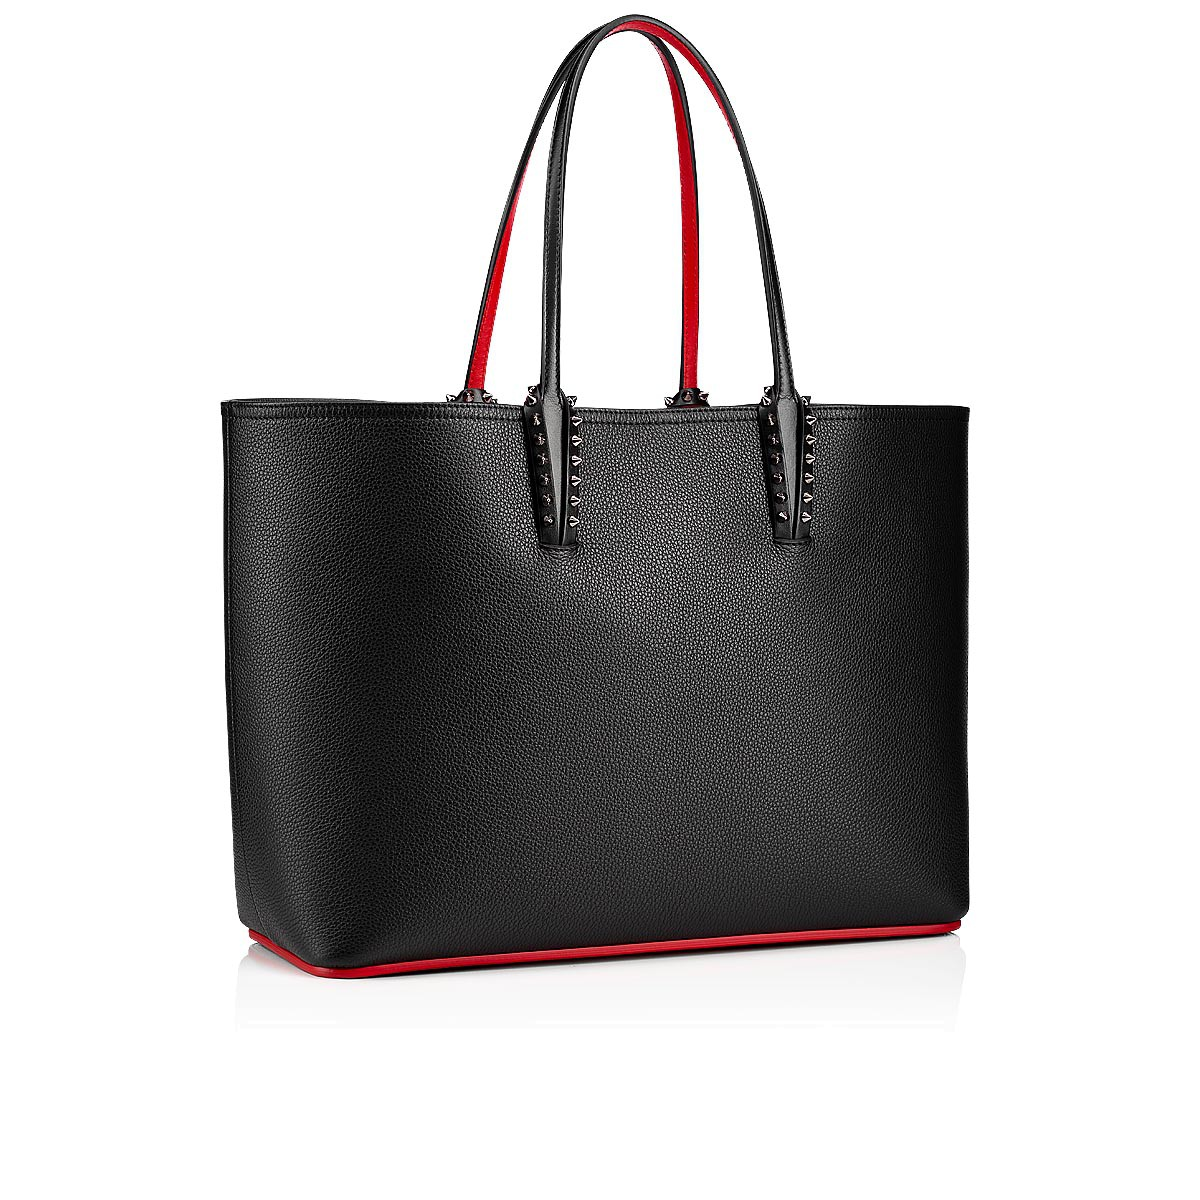 wholesale outlet los angeles save off CABATA BLACK CALF - Handbags - Christian Louboutin